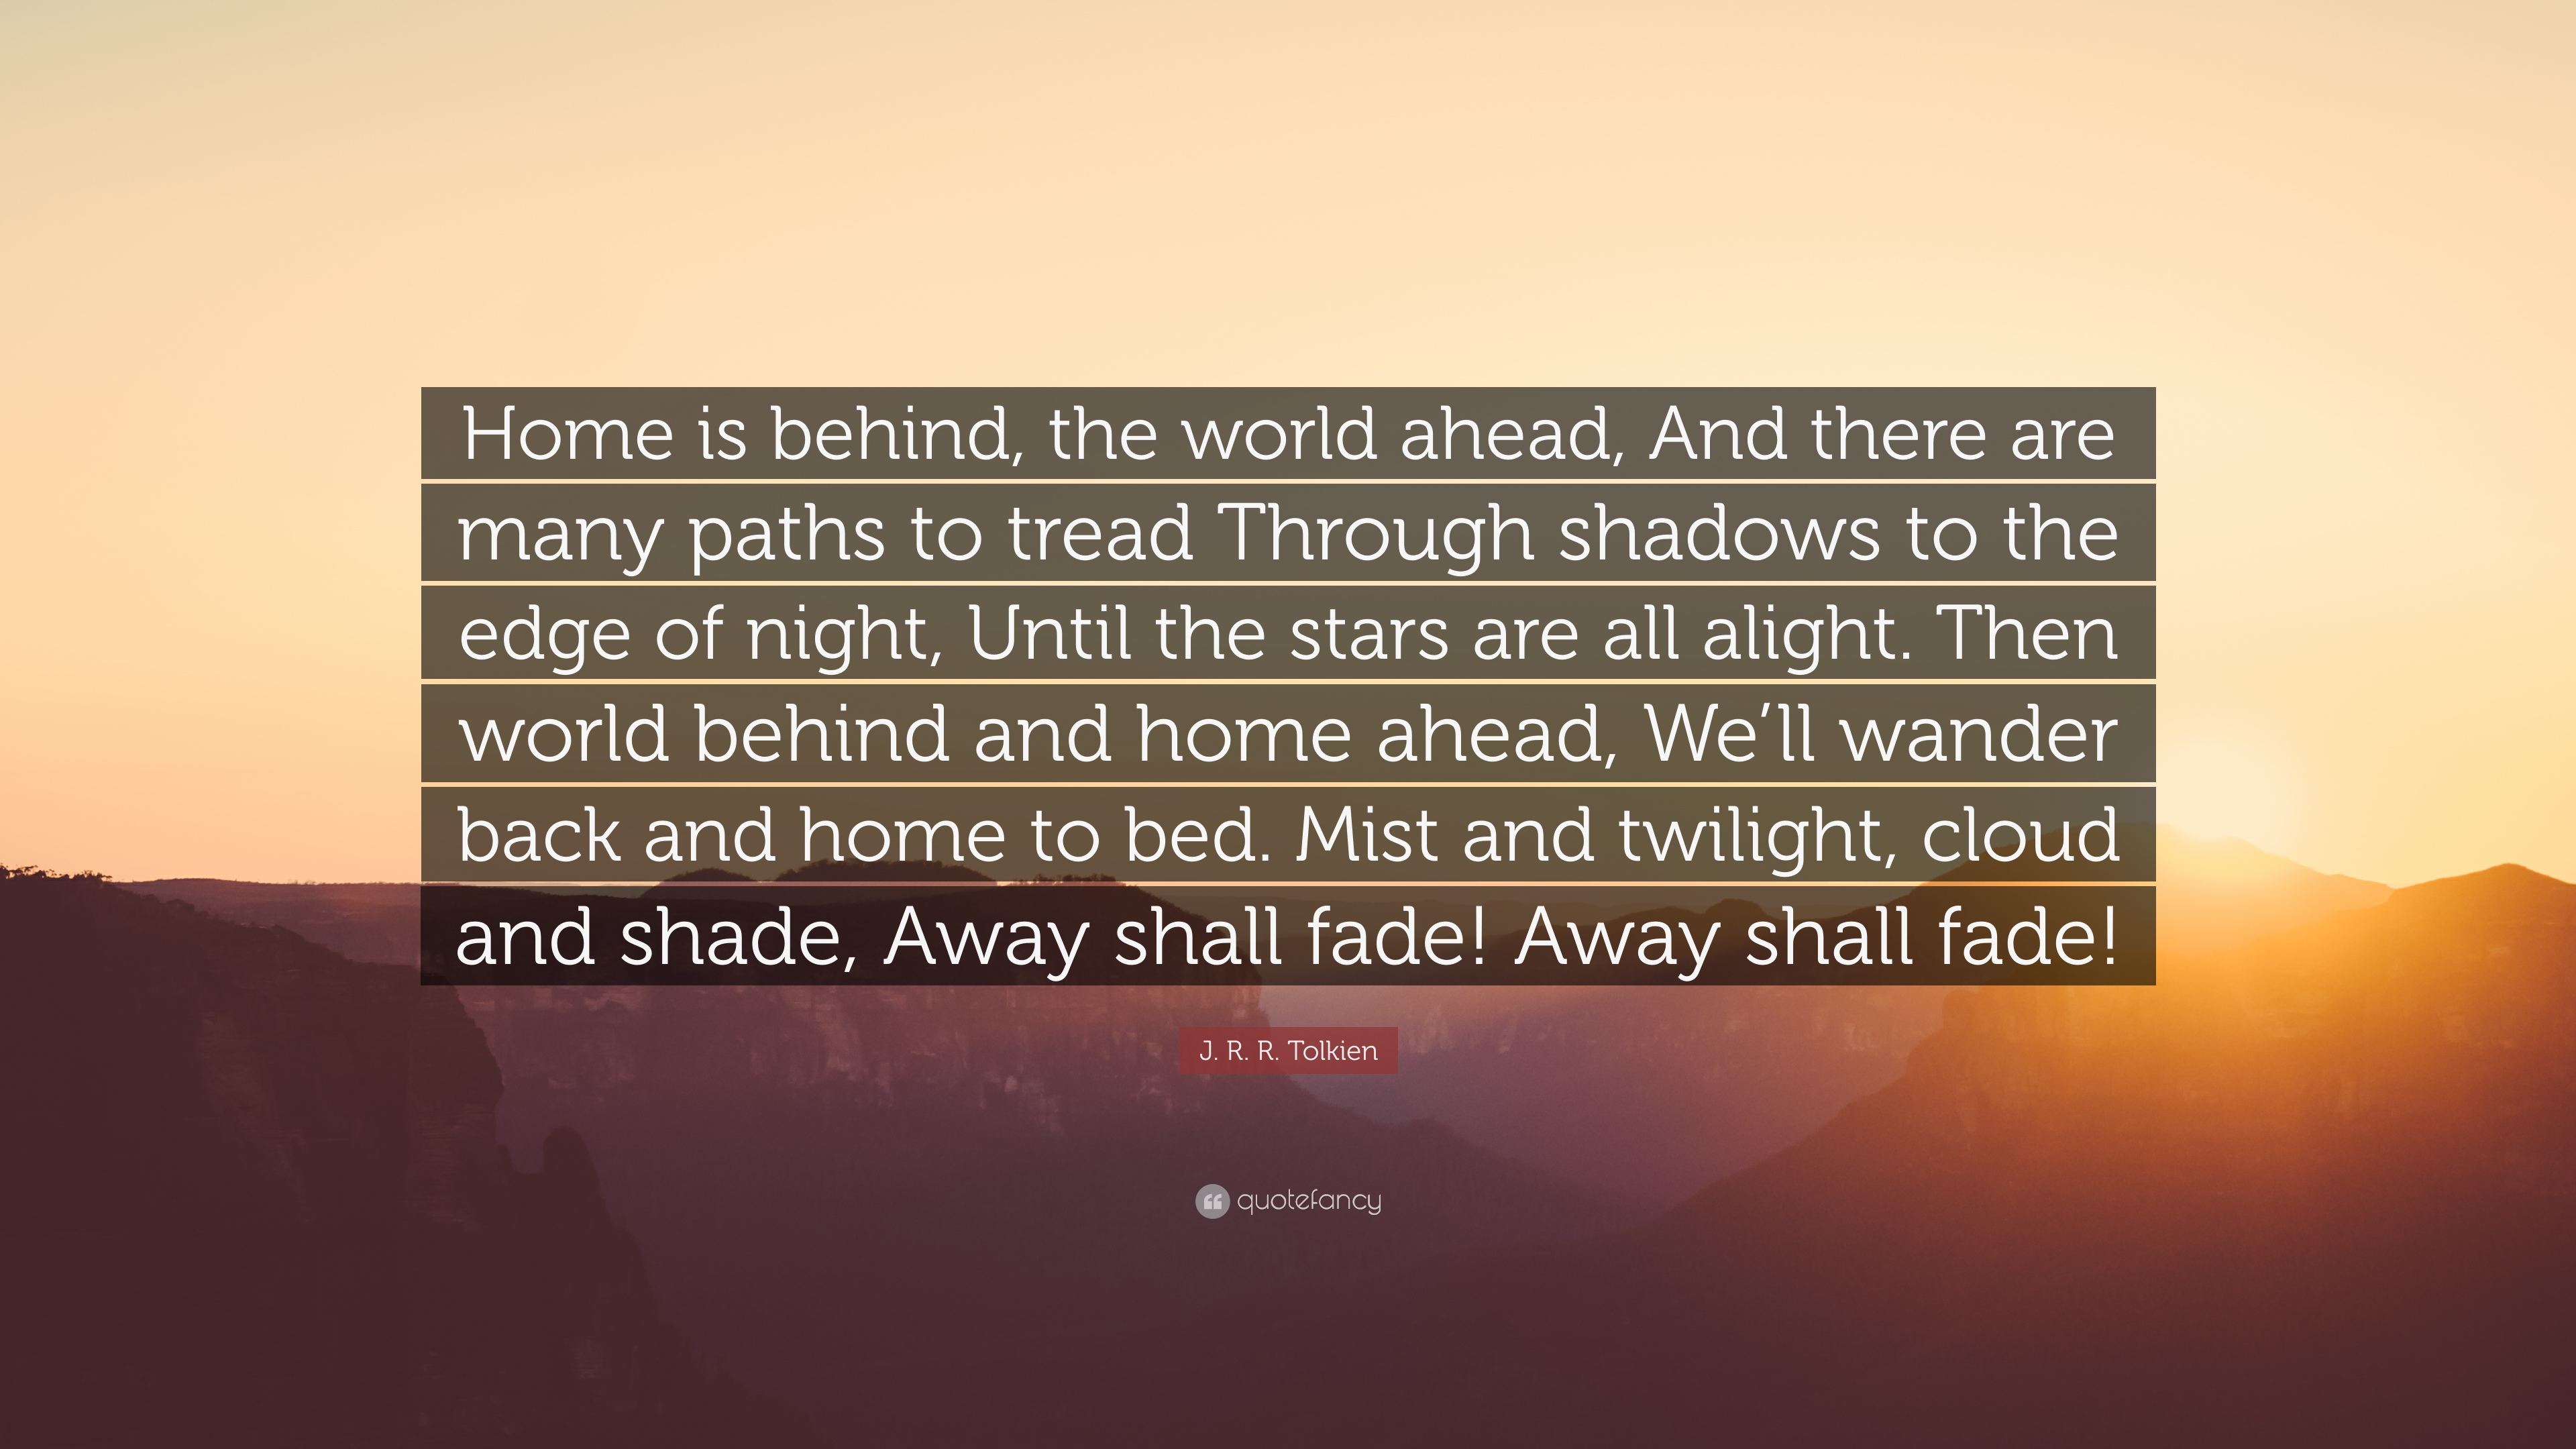 J R R Tolkien Quote Home Is Behind The World Ahead And There Are Many Paths To Tread Through Shadows To The Edge Of Night Until The Stars 12 Wallpapers Quotefancy